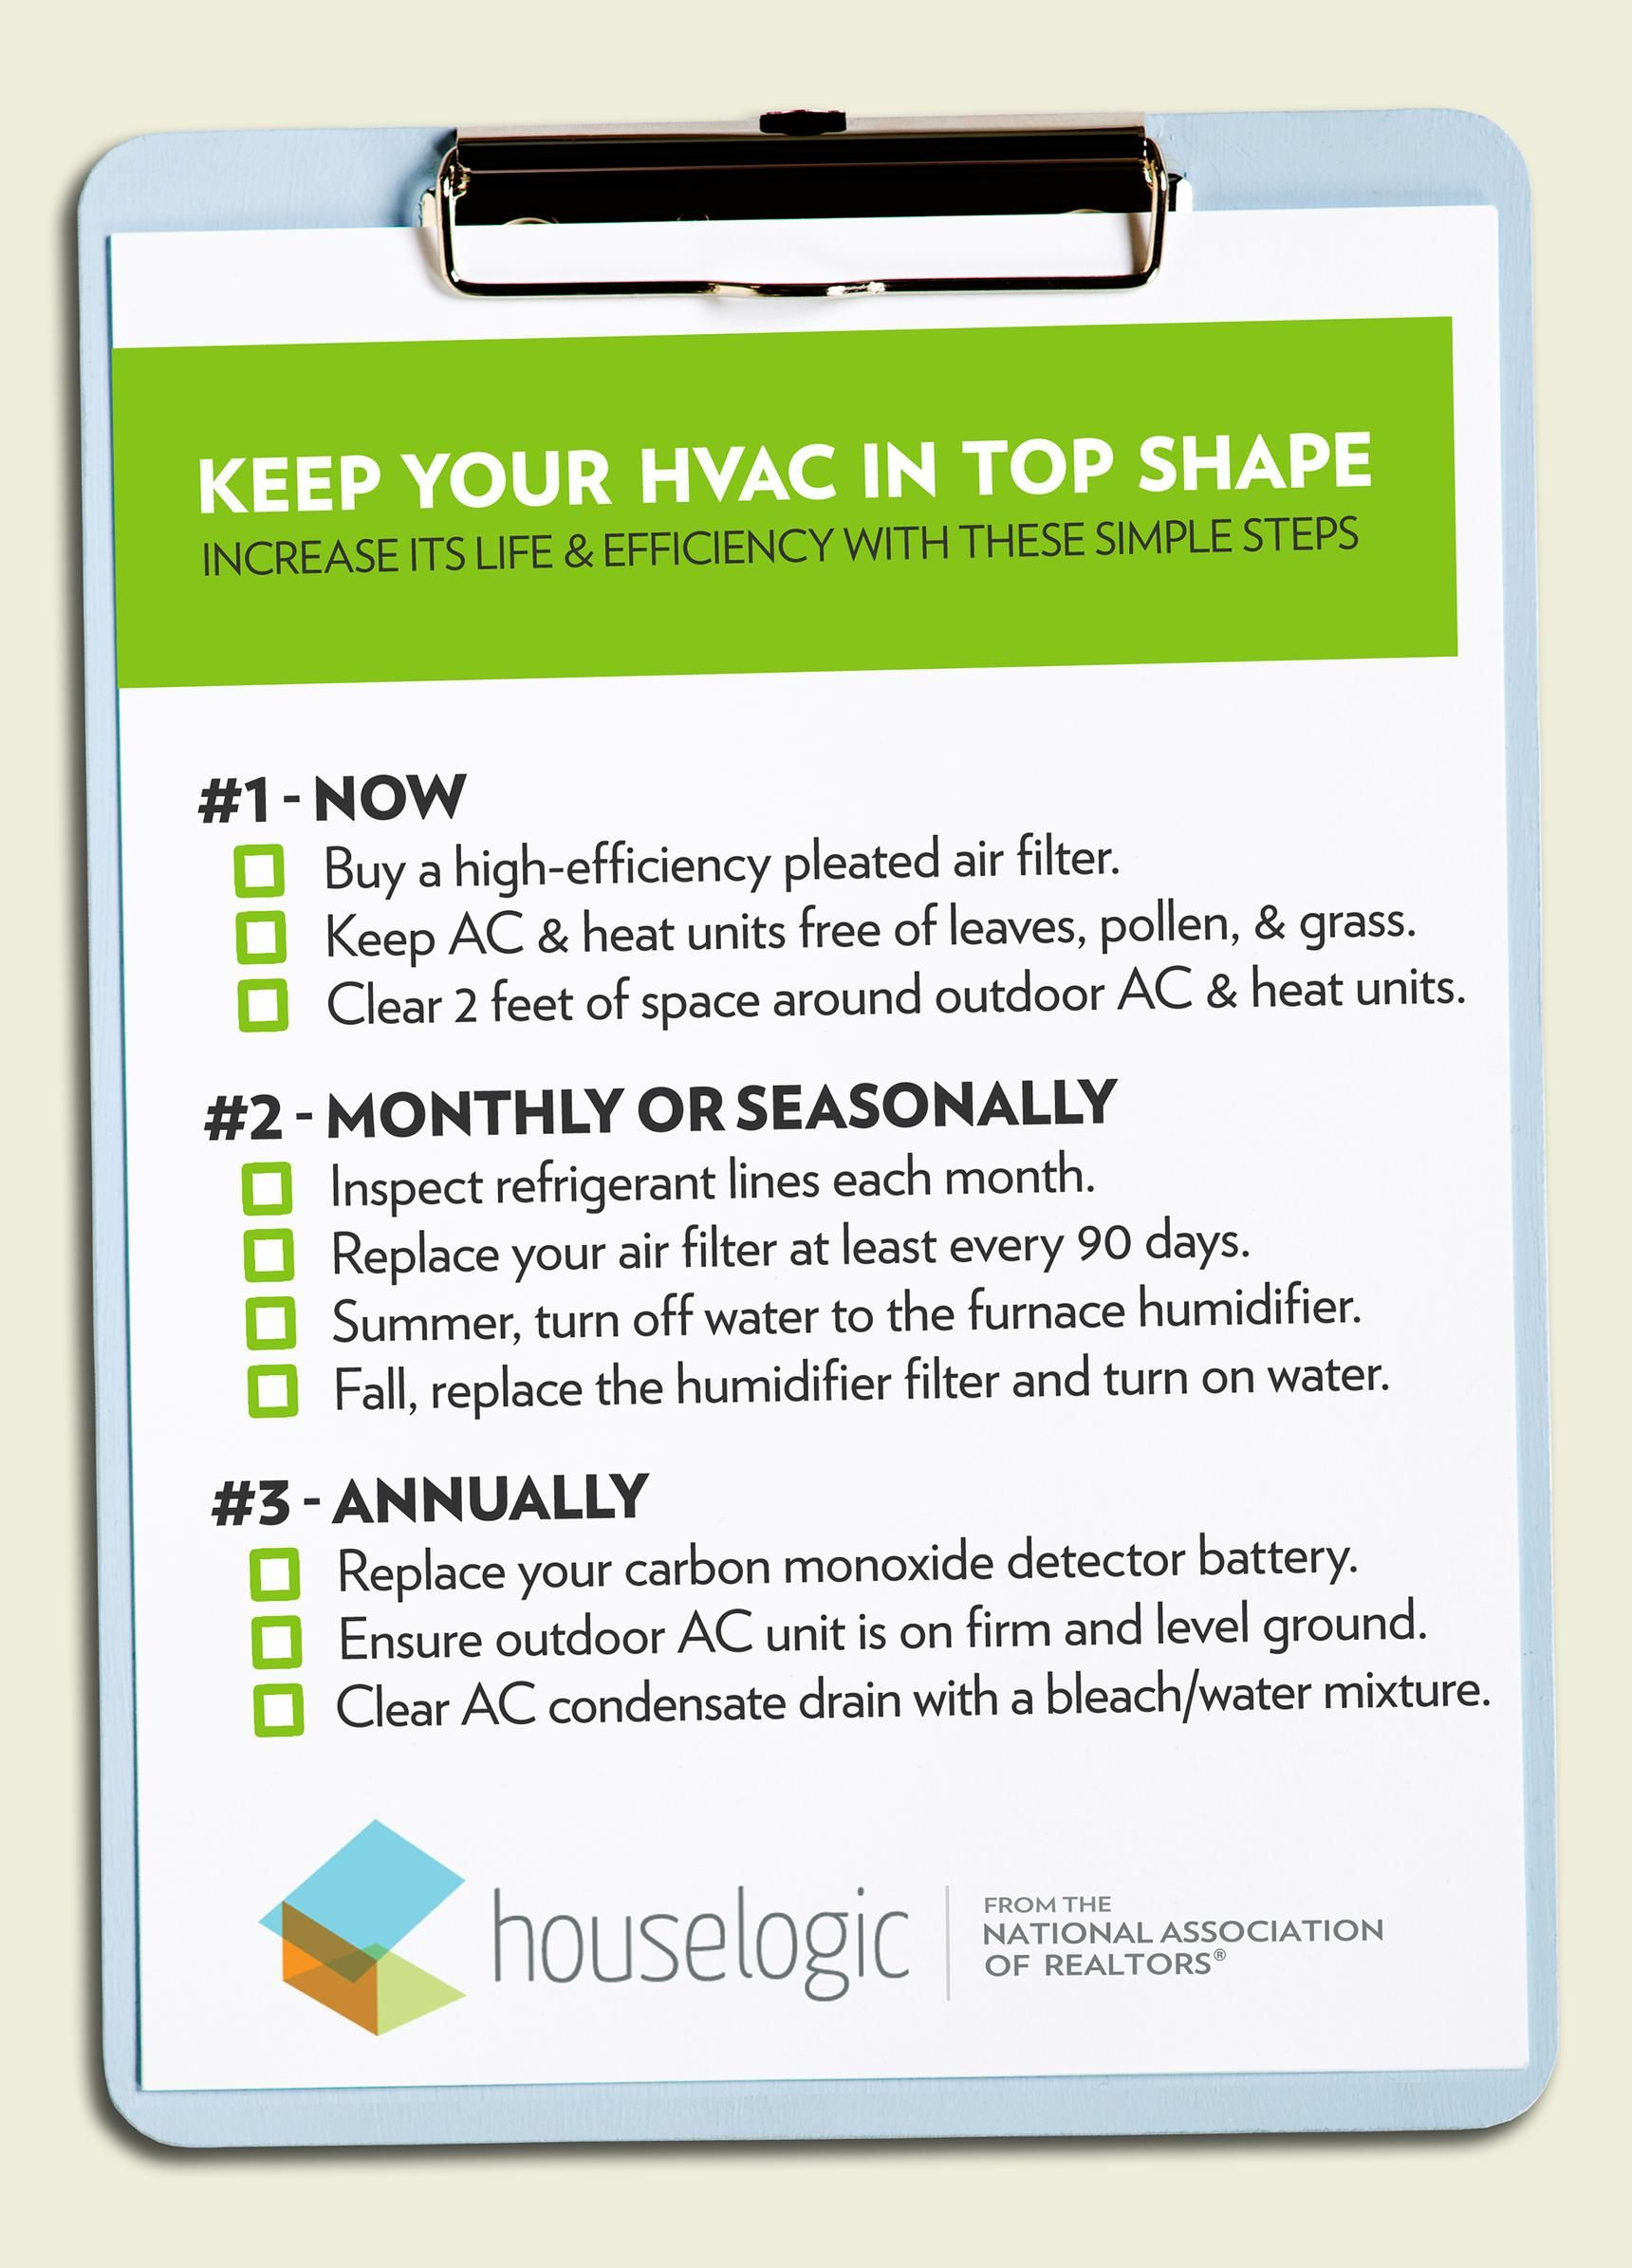 HVAC Maintenance Checklist Hvac maintenance, Heating